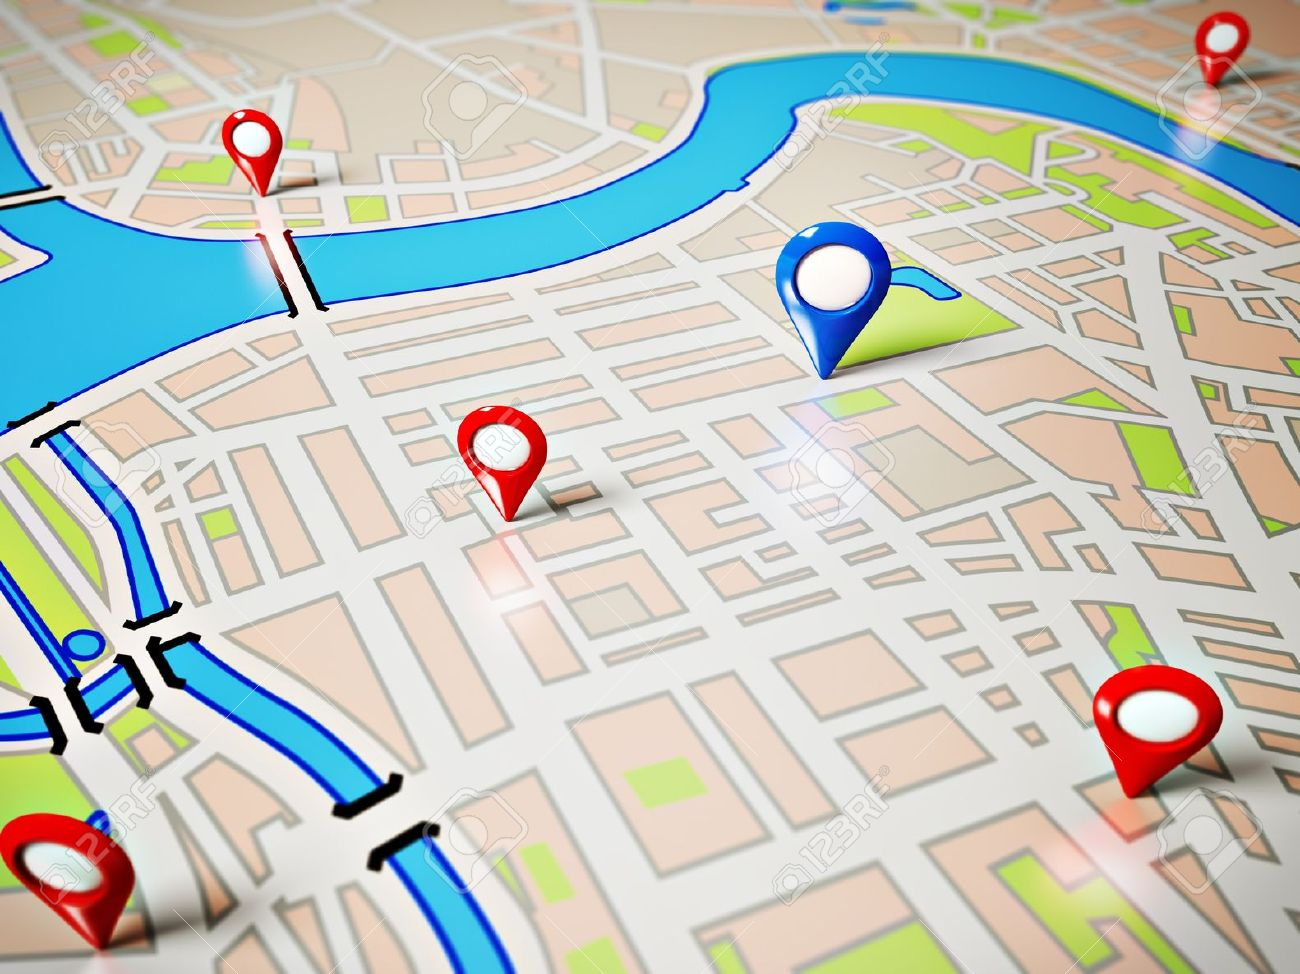 Phone Tracker: How to track a cell phone